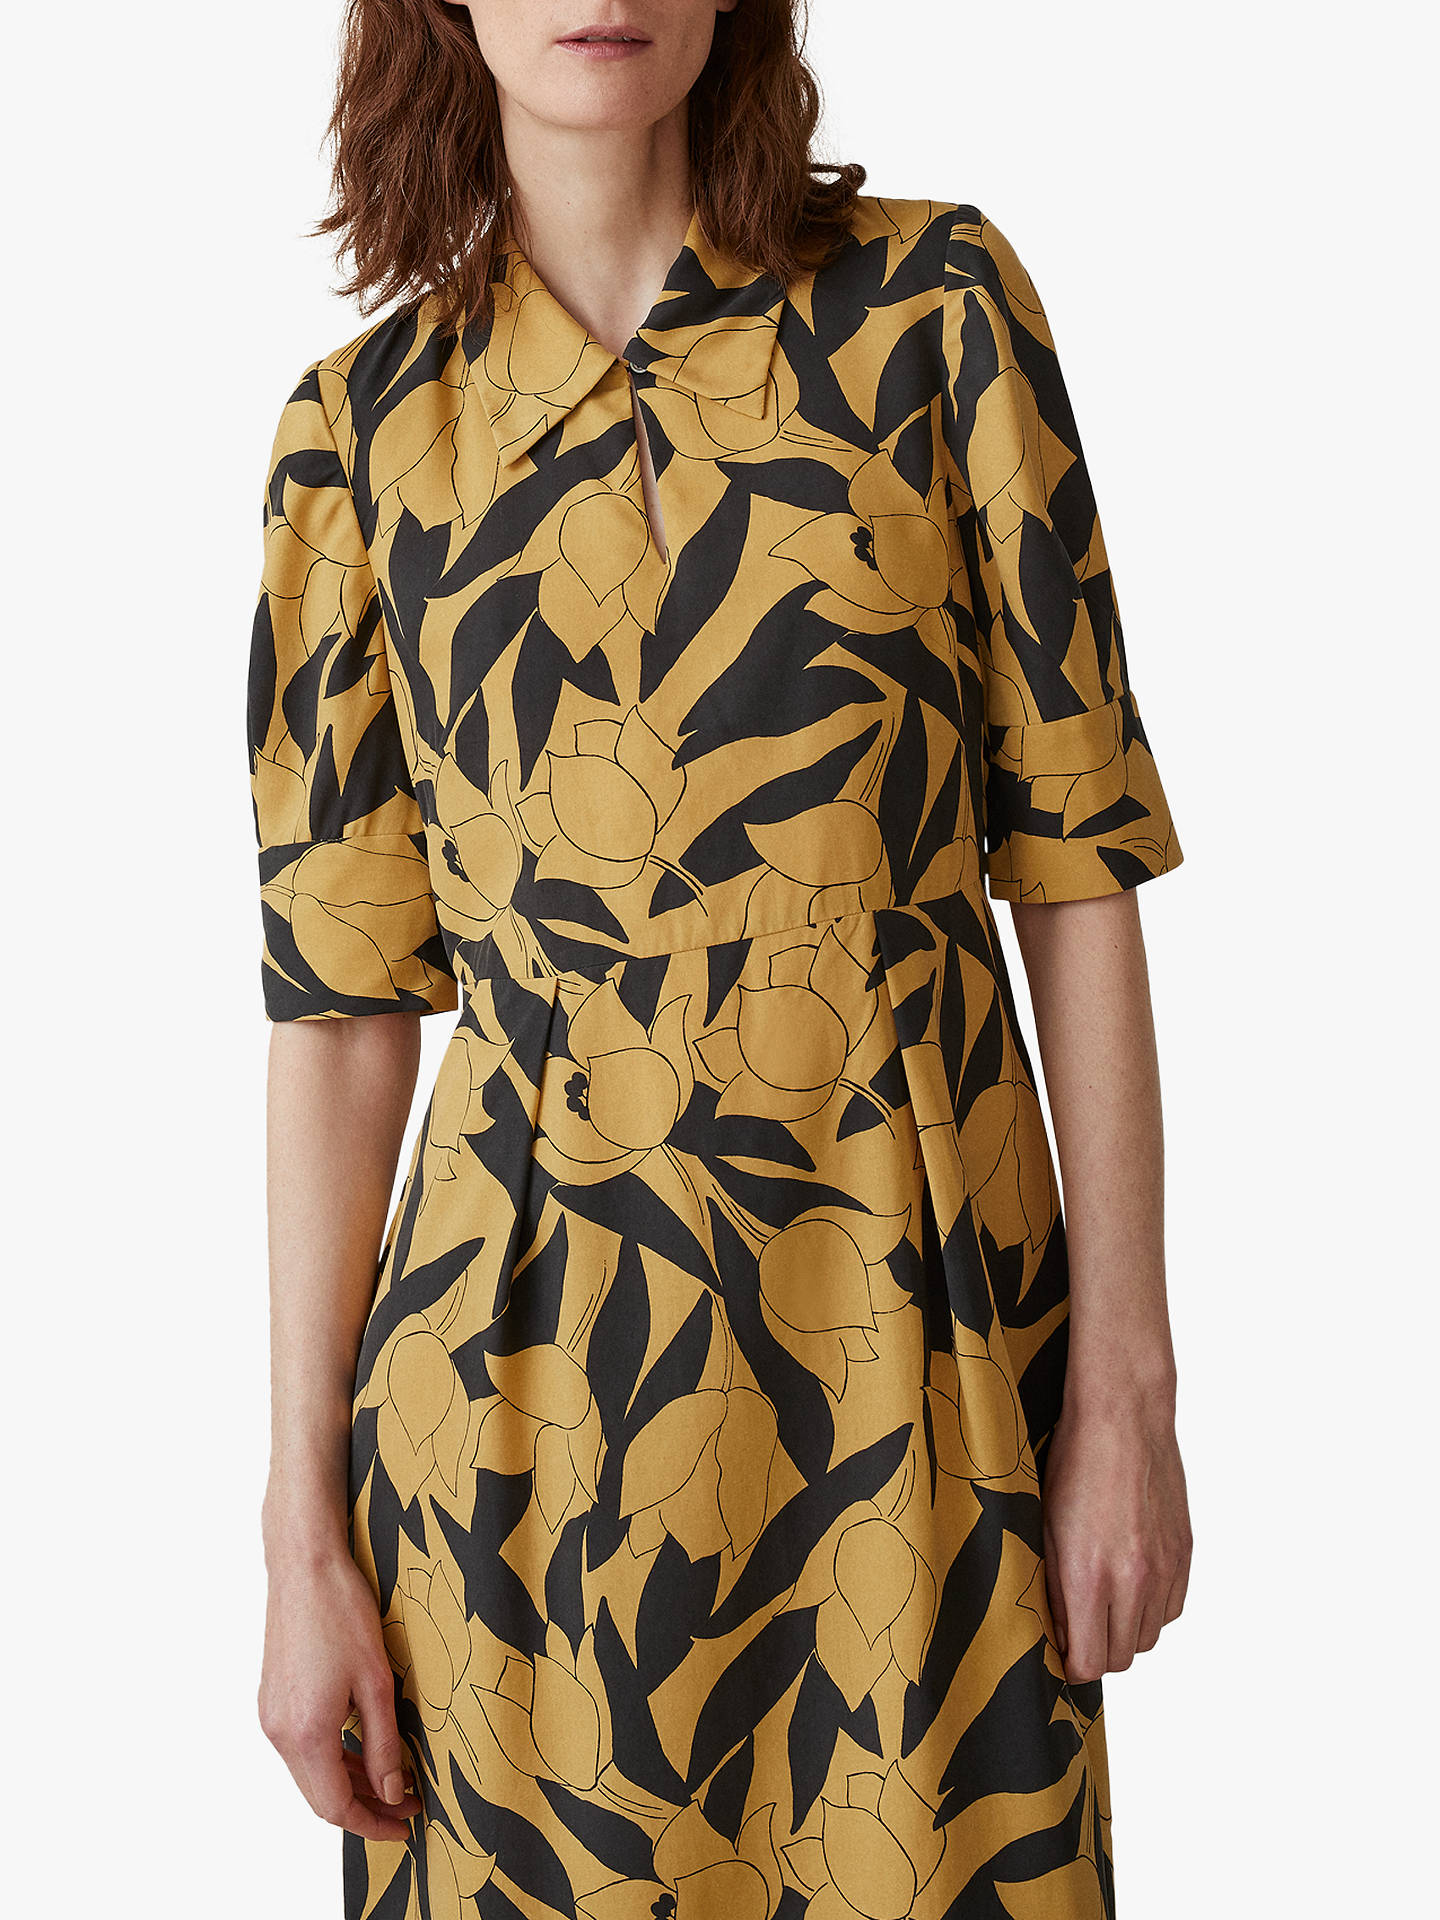 BuyToast Linear Floral Print Silk Dress, Soft Yellow, 8 Online at johnlewis.com